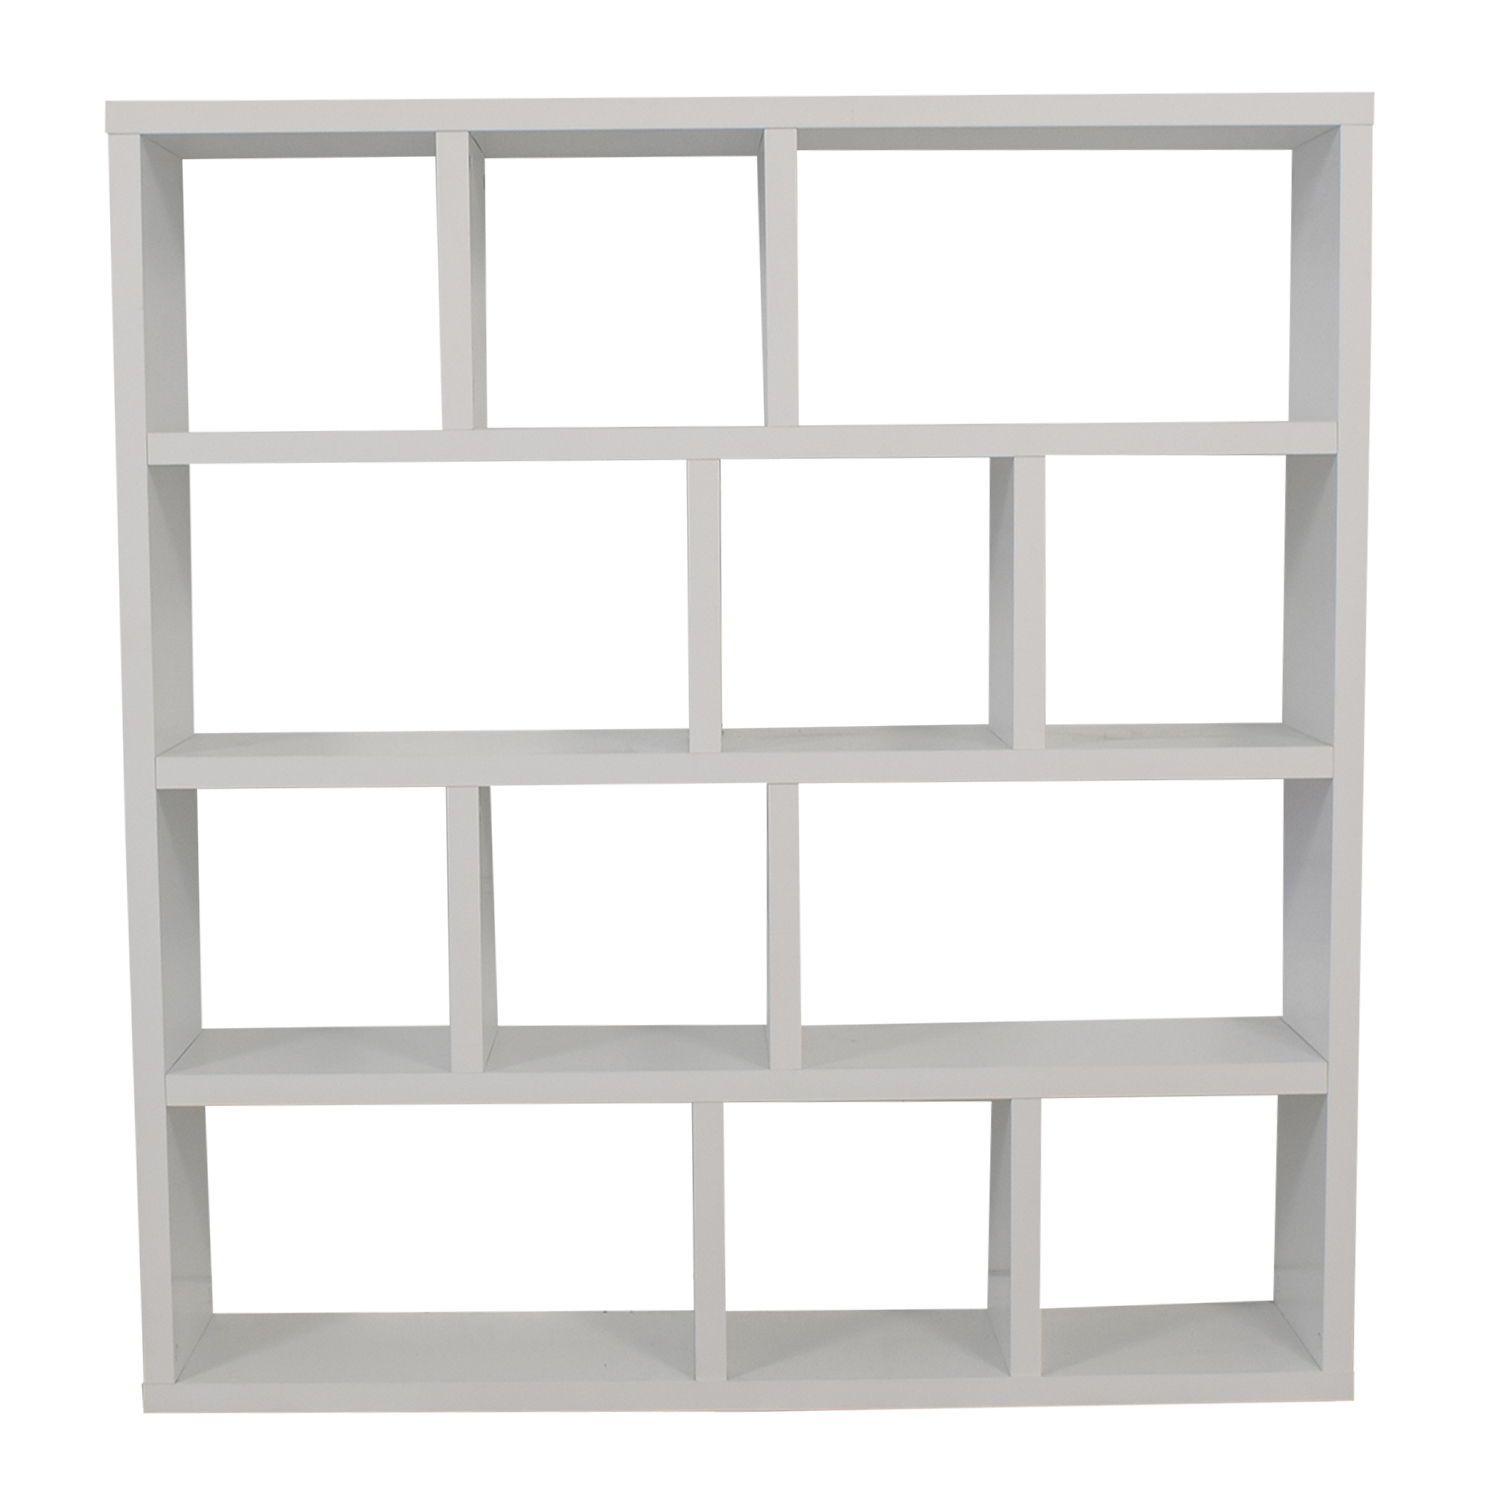 ABC Carpet & Home ABC Carpet & Home White Cube Bookshelf Decor